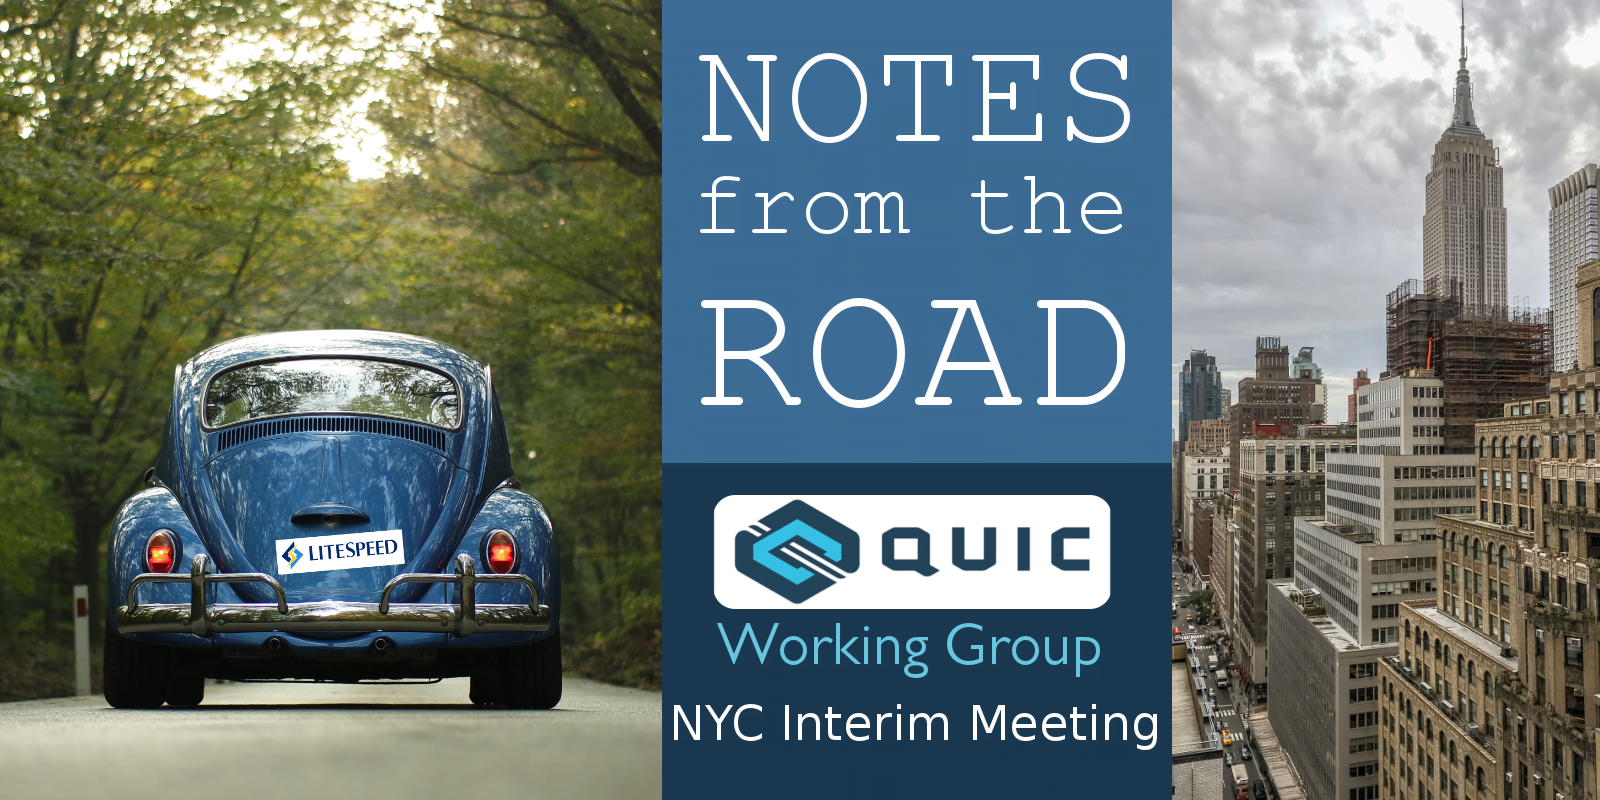 Notes from the Road: QUIC Interim NYC